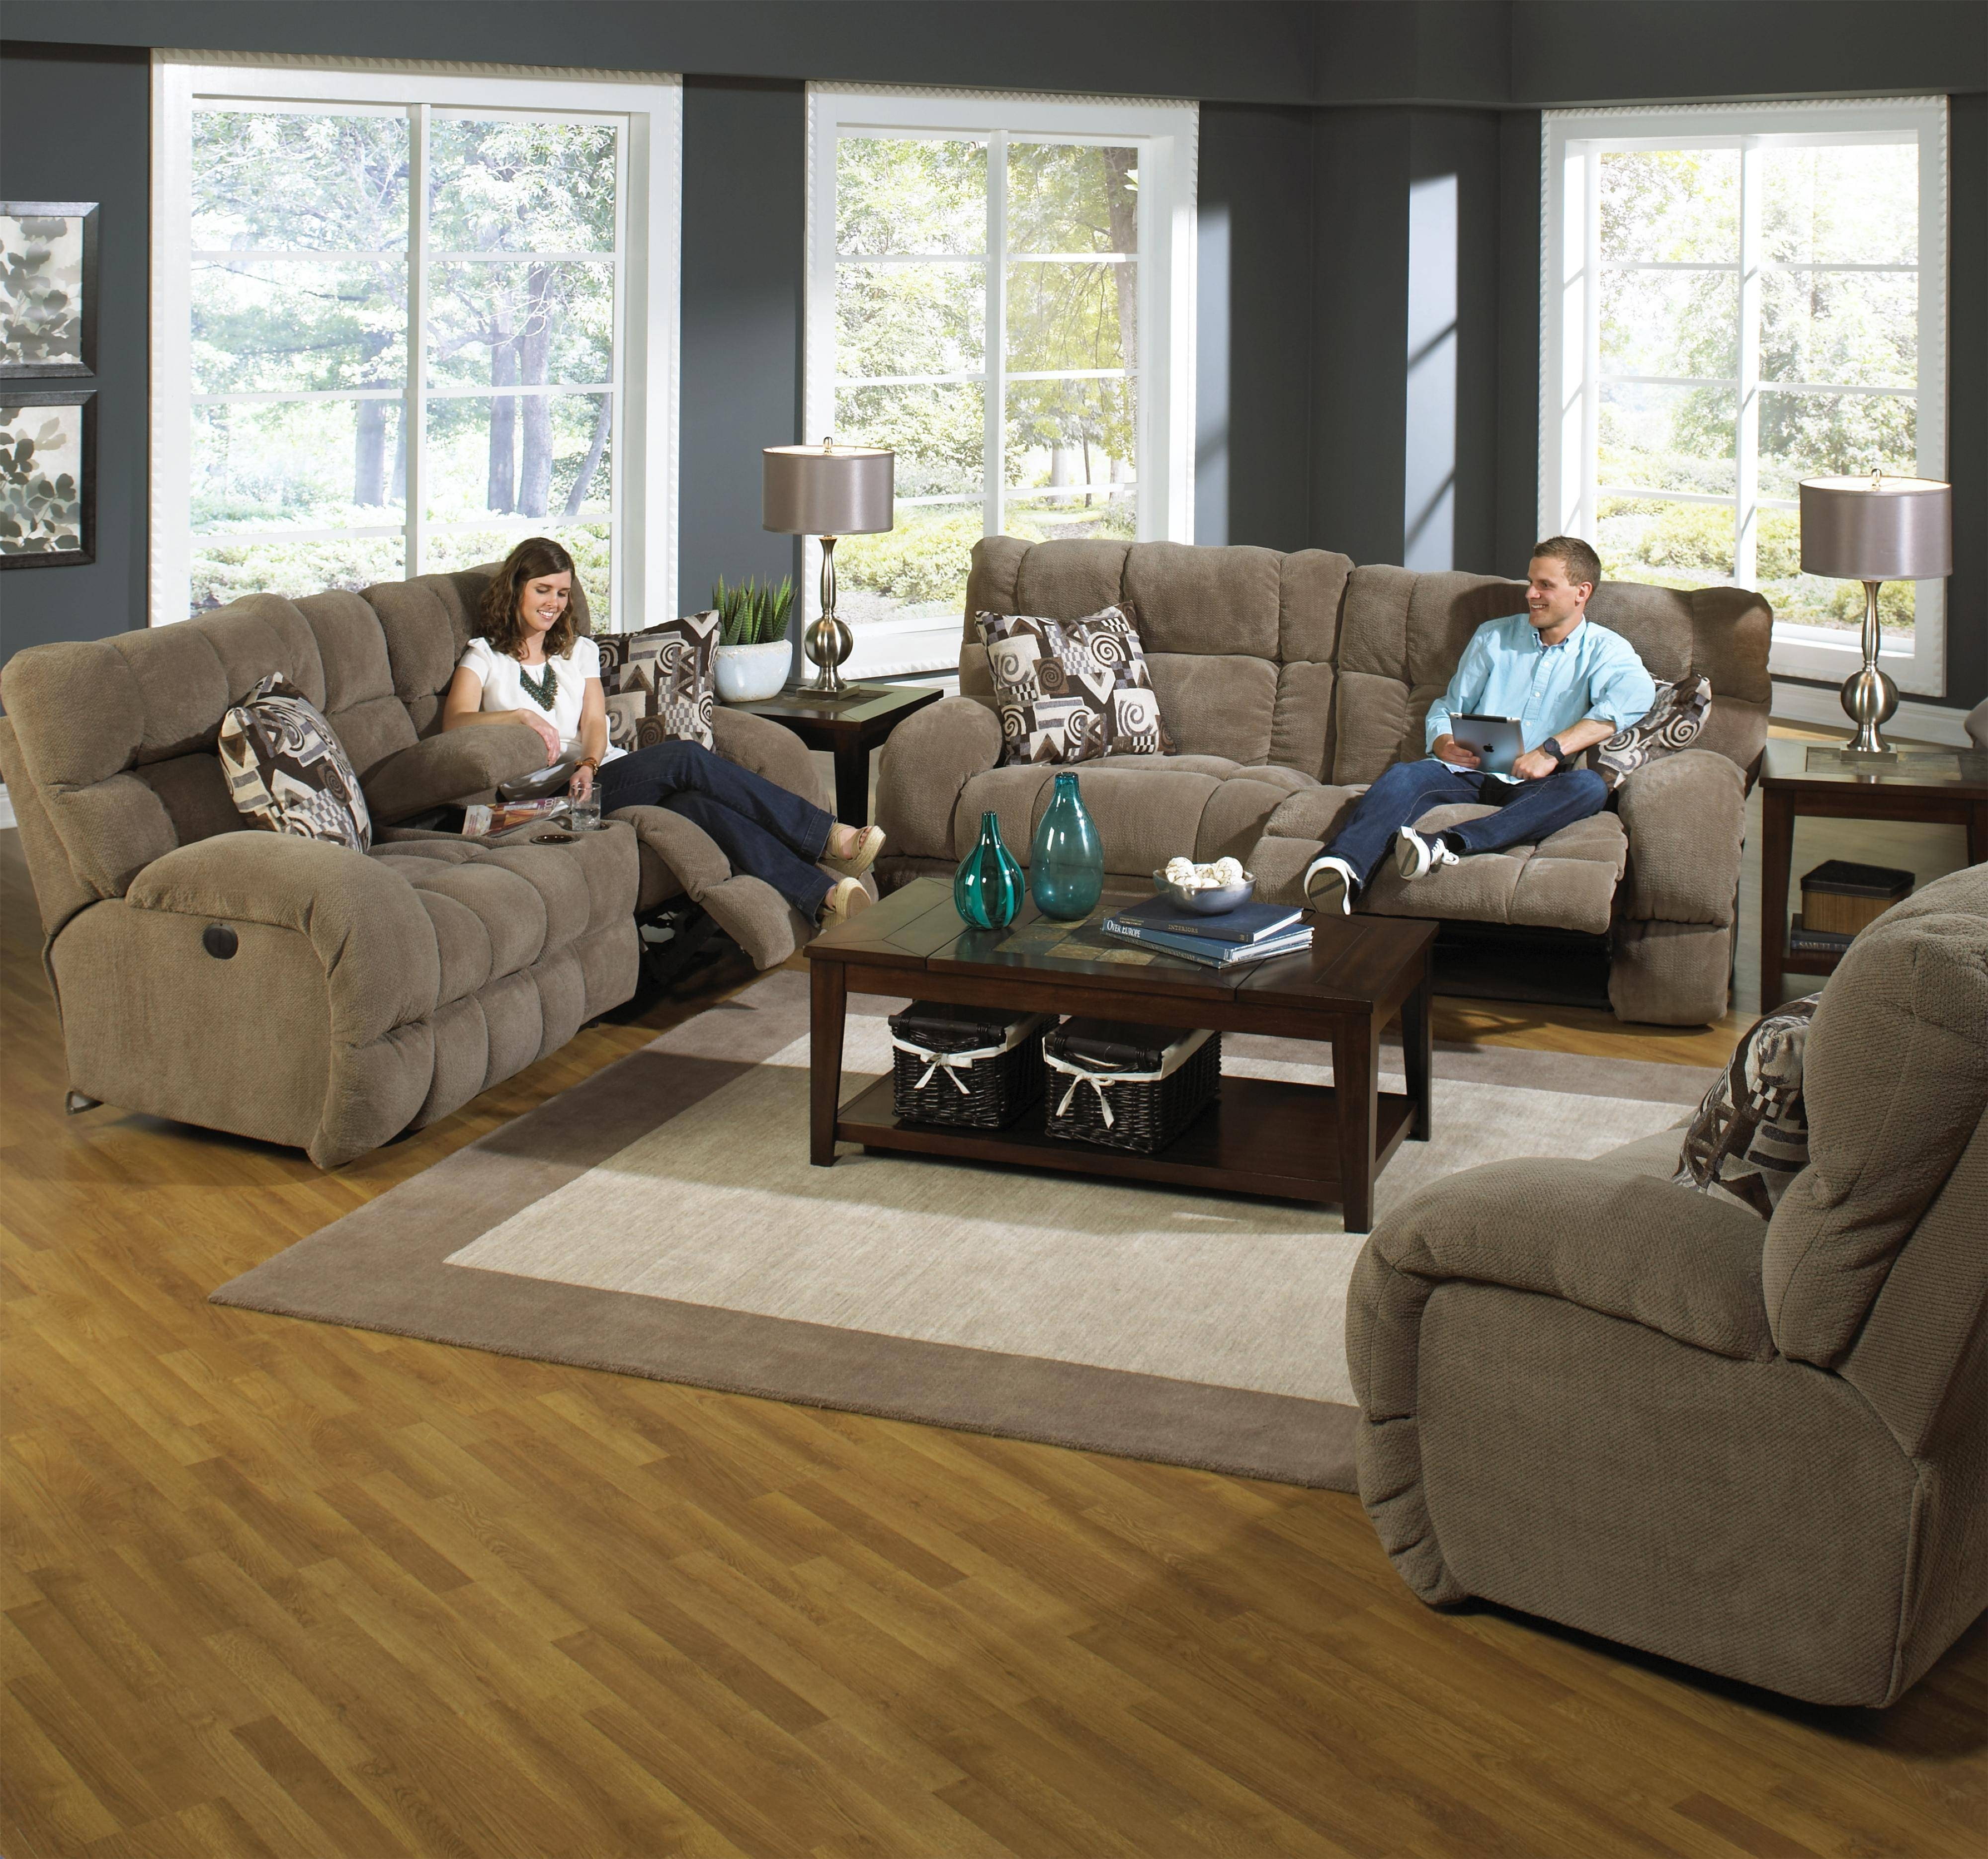 Power Lay Flat Reclining Sofa With Wide Seatscatnapper | Wolf Regarding Catnapper Recliner Sofas (View 9 of 15)